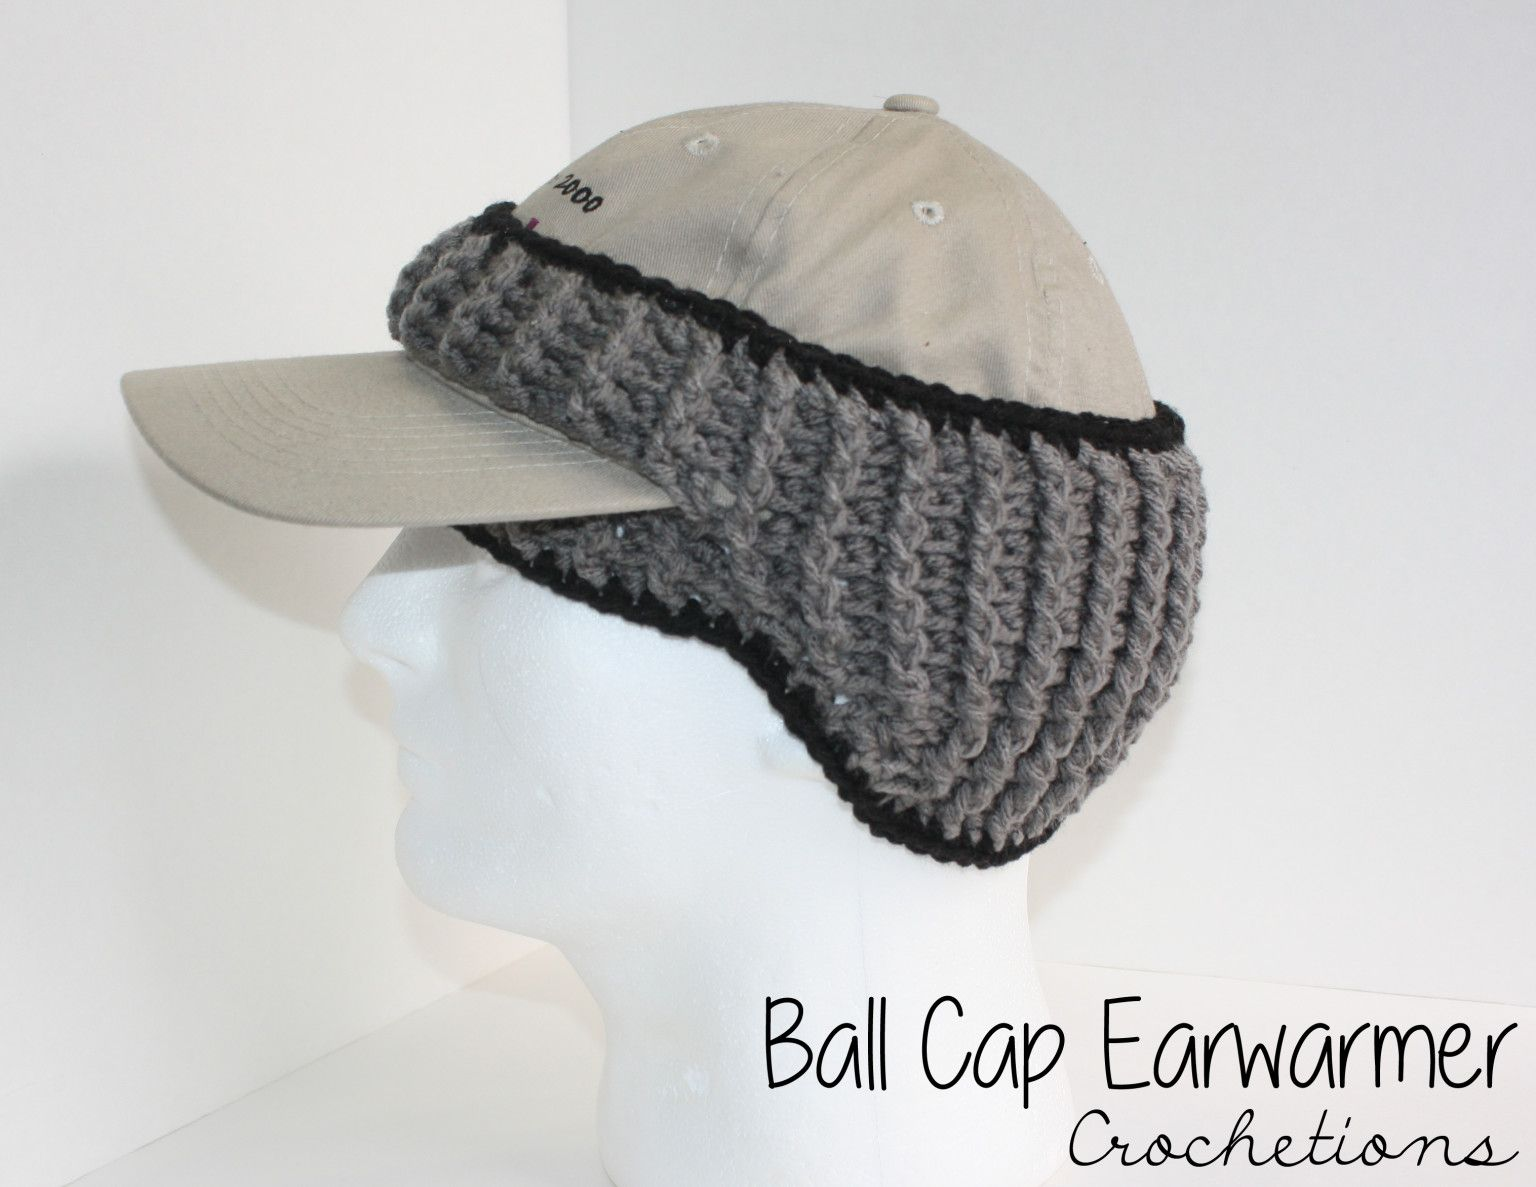 Handmade crochet headband for ball cap wearers great for winter handmade crochet headband for ball cap wearers great for winter weather to keep those ears bankloansurffo Choice Image